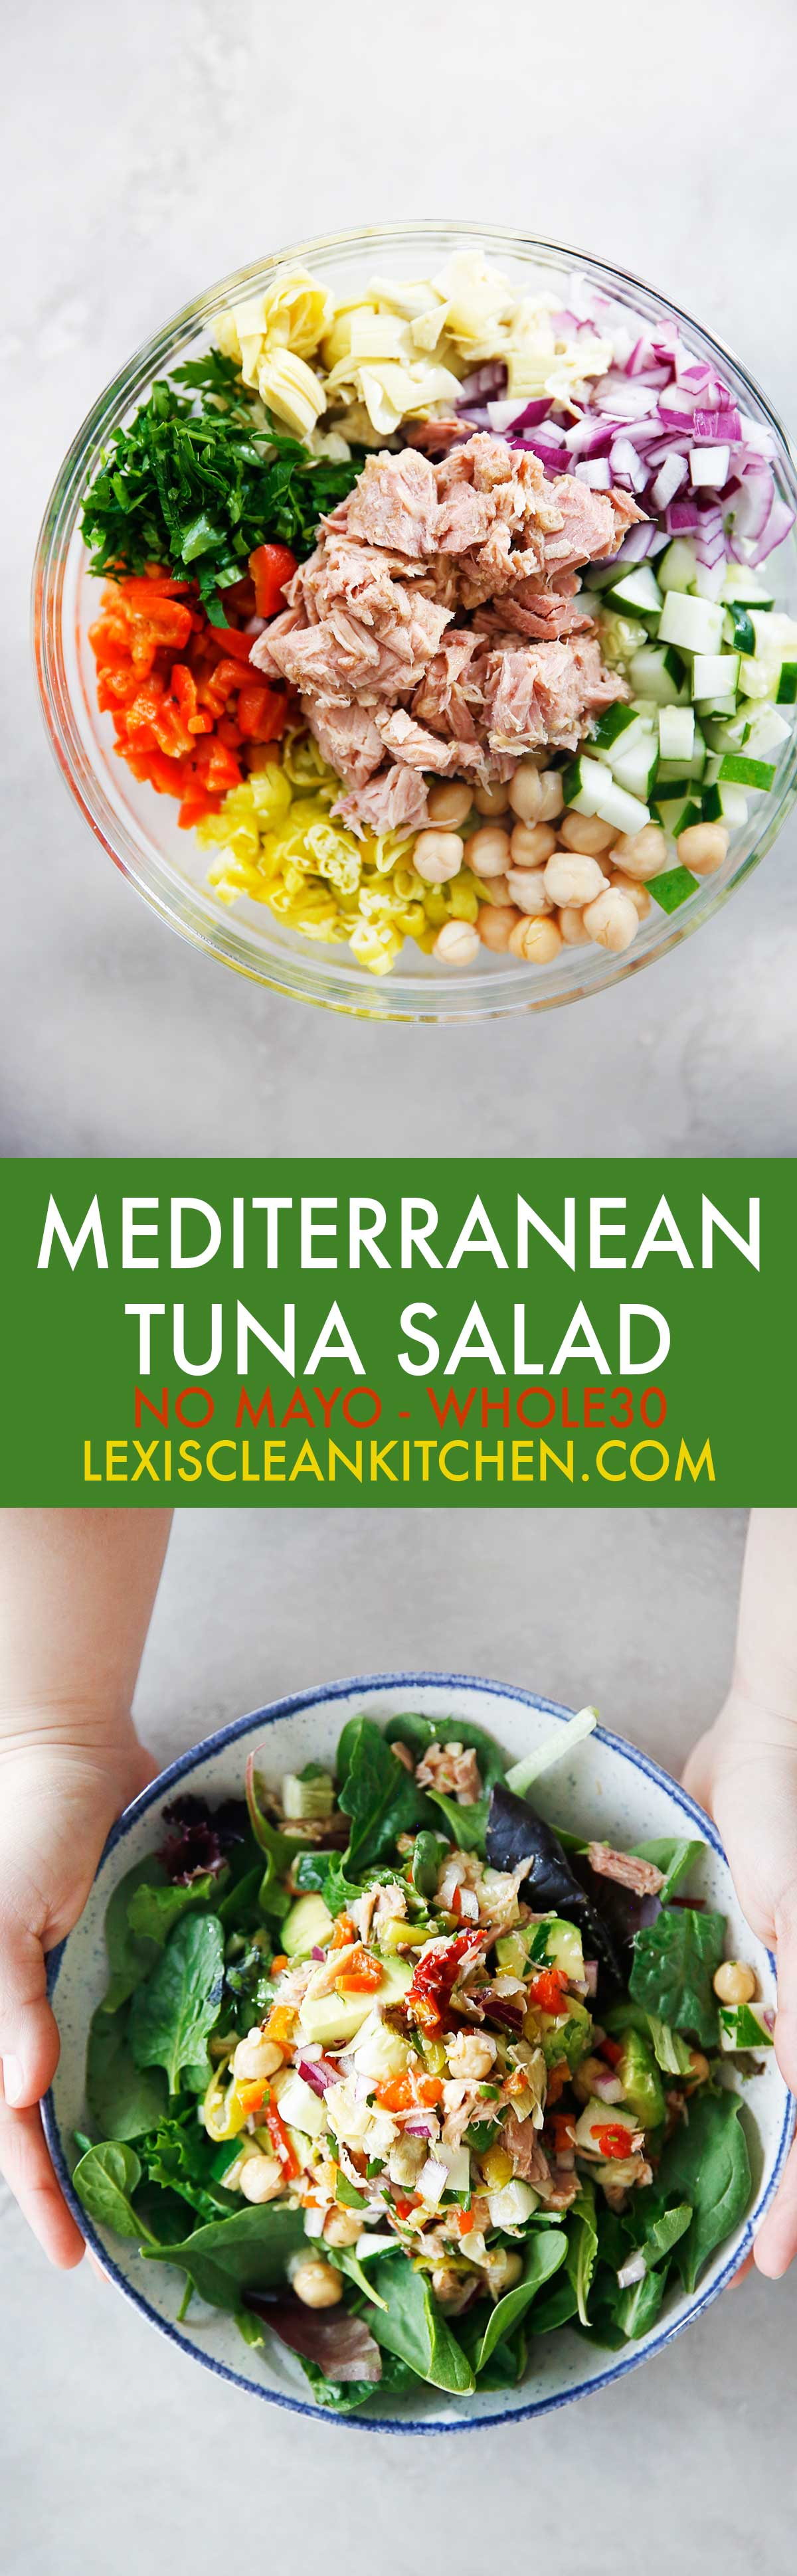 Mediterranean Tuna Salad with No Mayo - Lexi's Clean Kitchen #tuna #salad #nomayo #healthy #lunch